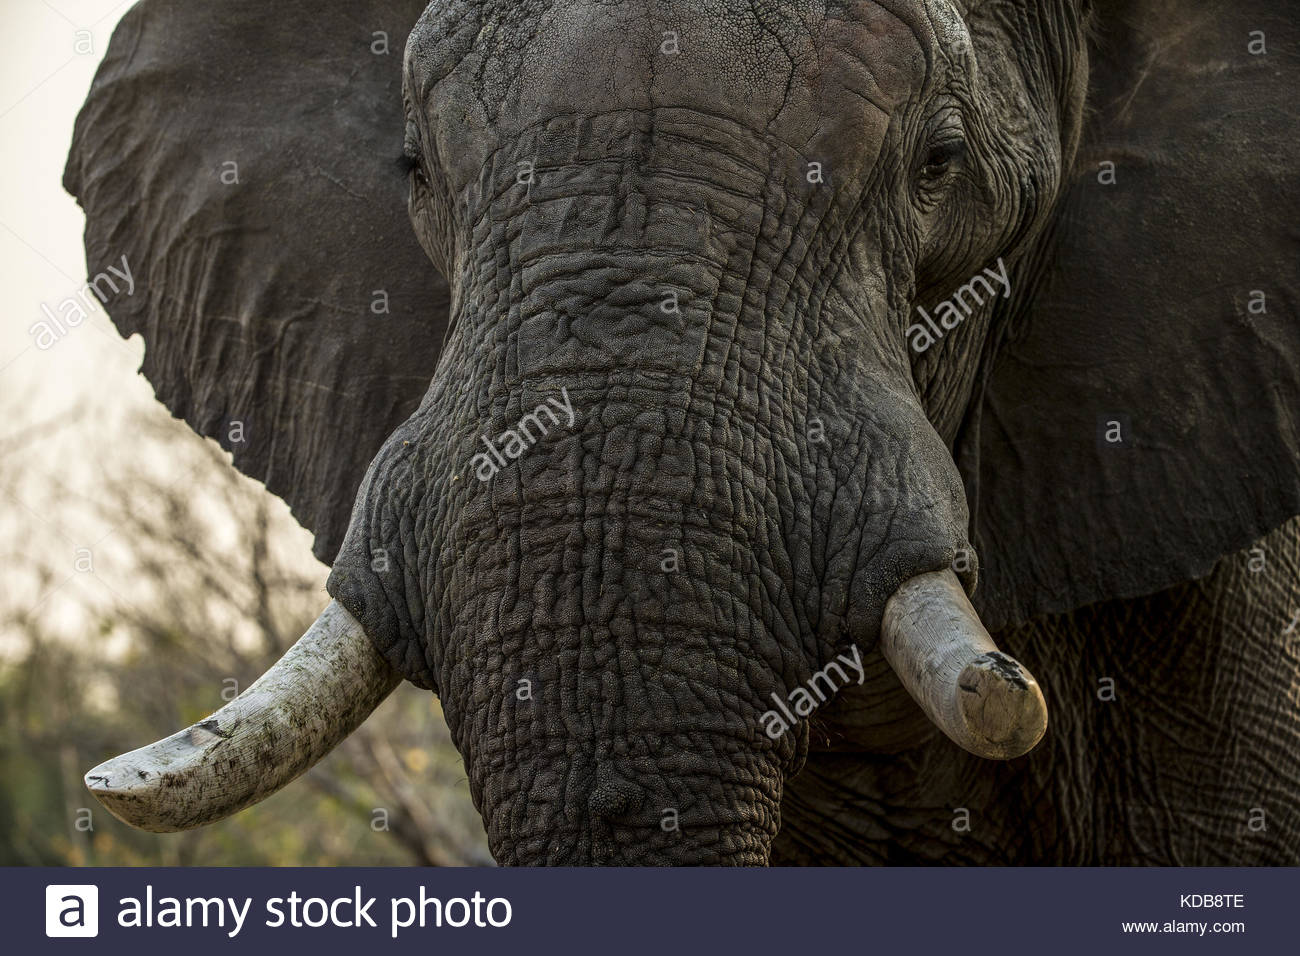 A close up of an elephant, Loxodonta africana. - Stock Image